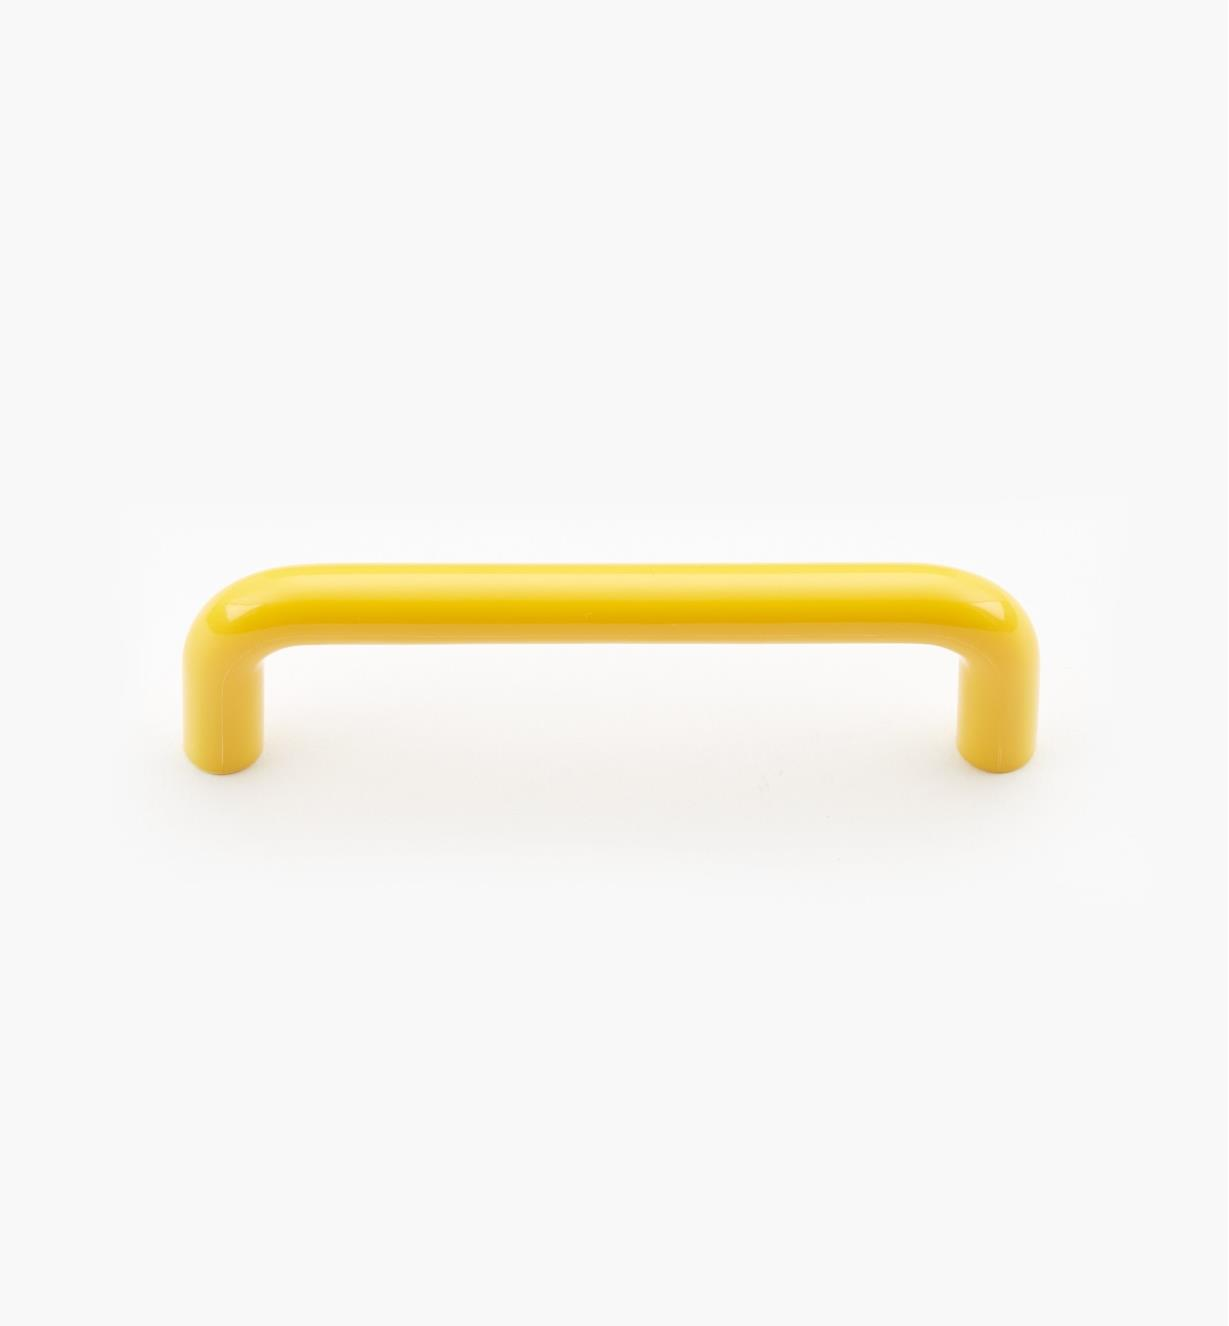 00W3813 - 96mm Yellow Handle